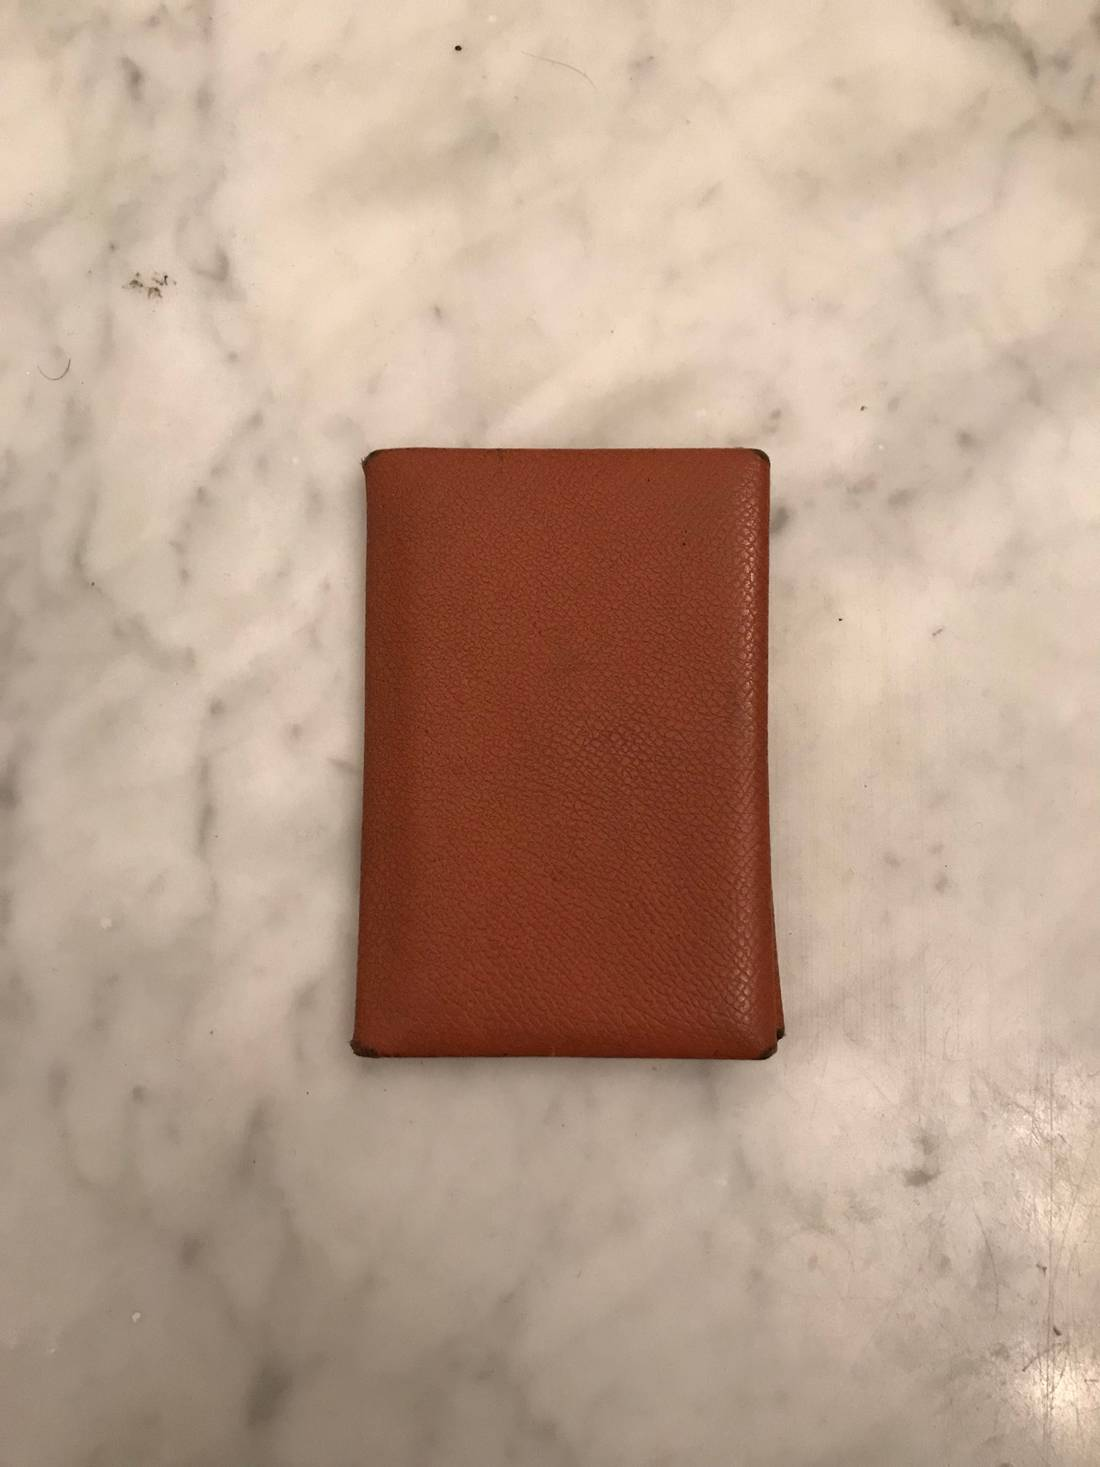 Hermes herms business card holder size one size wallets for sale hermes herms business card holder size one size 1 colourmoves